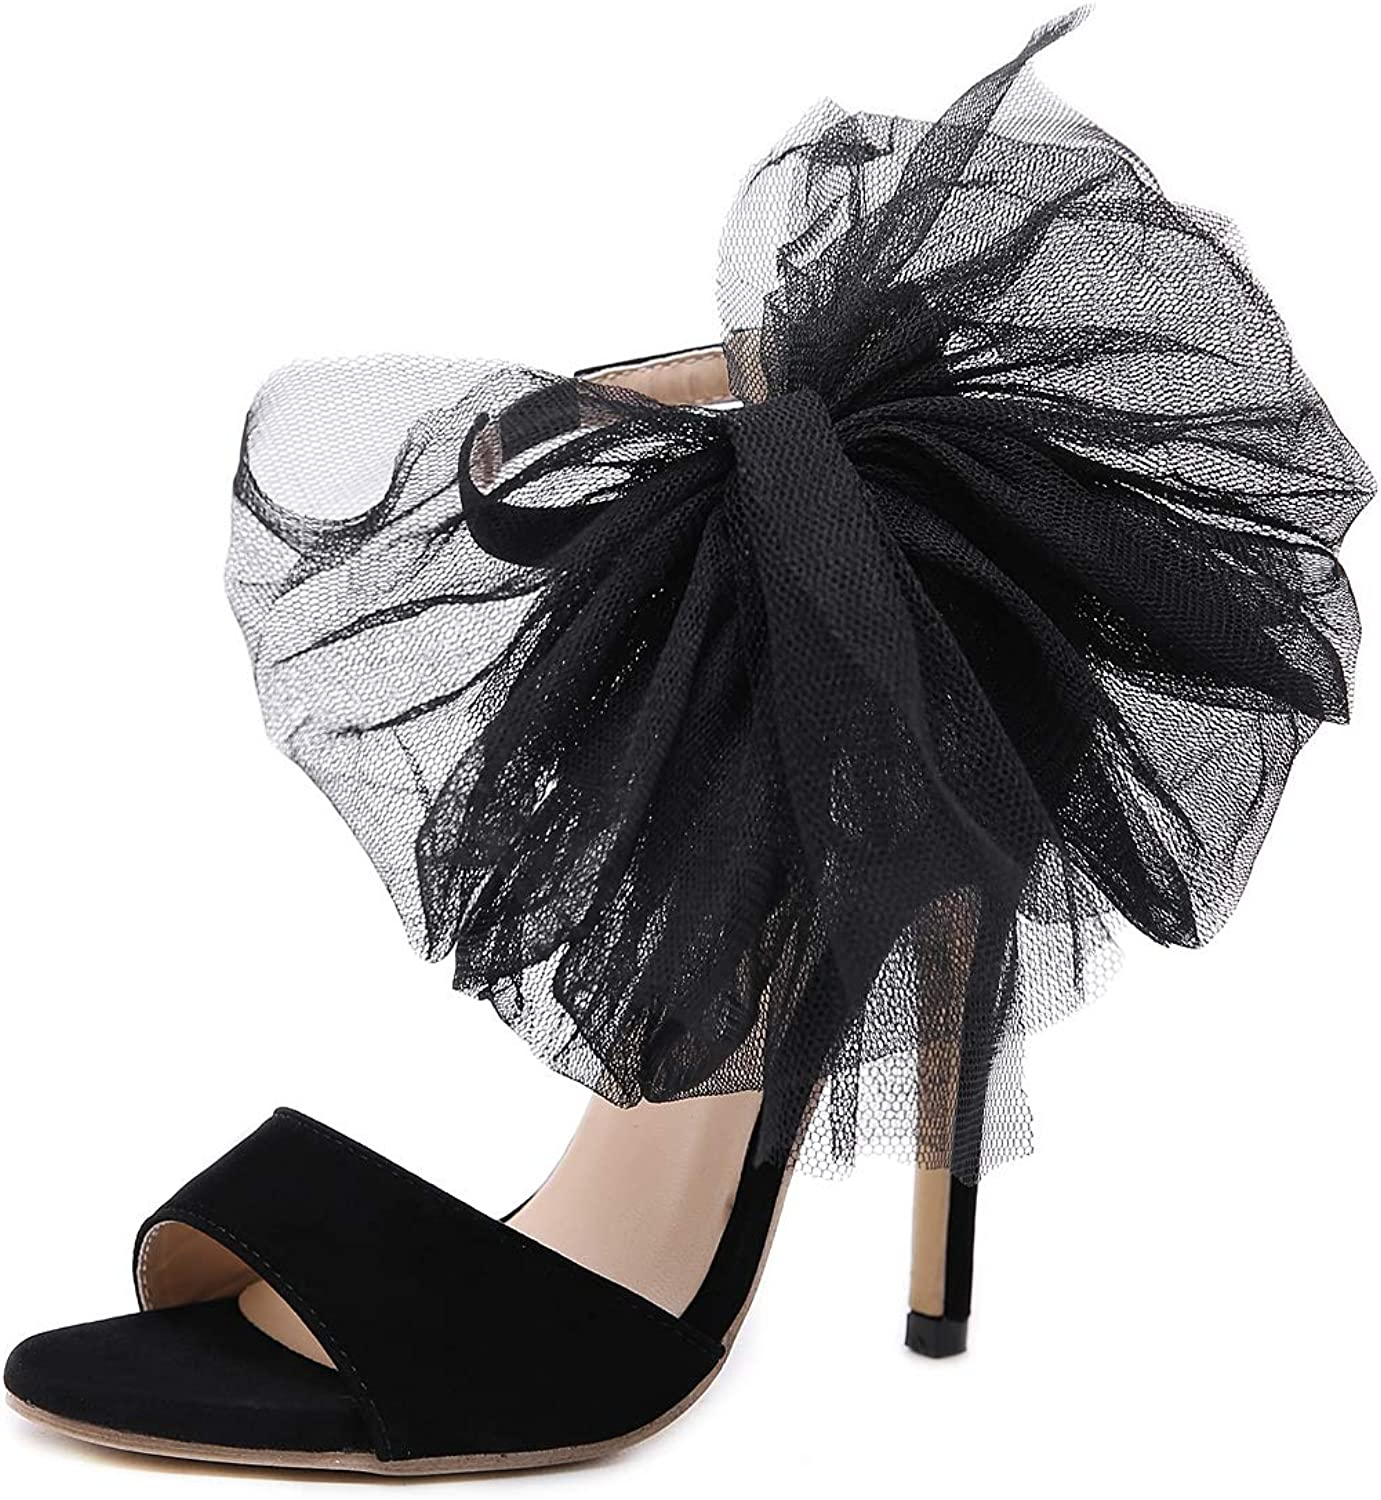 Ladies Sandals Lace Bow Black Sexy Stiletto Openwork shoes